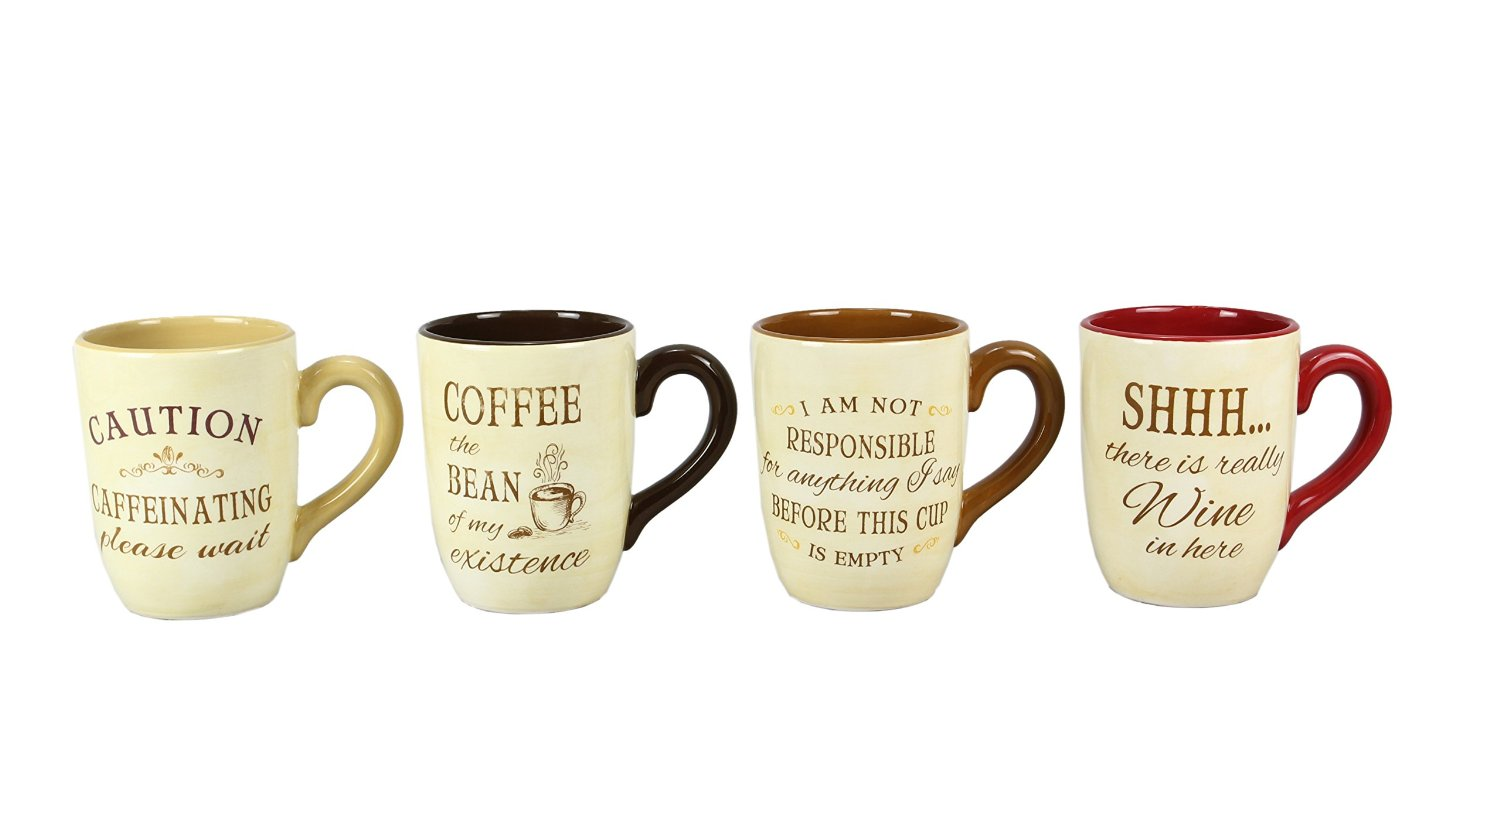 25 best coffee mugs for home reviews